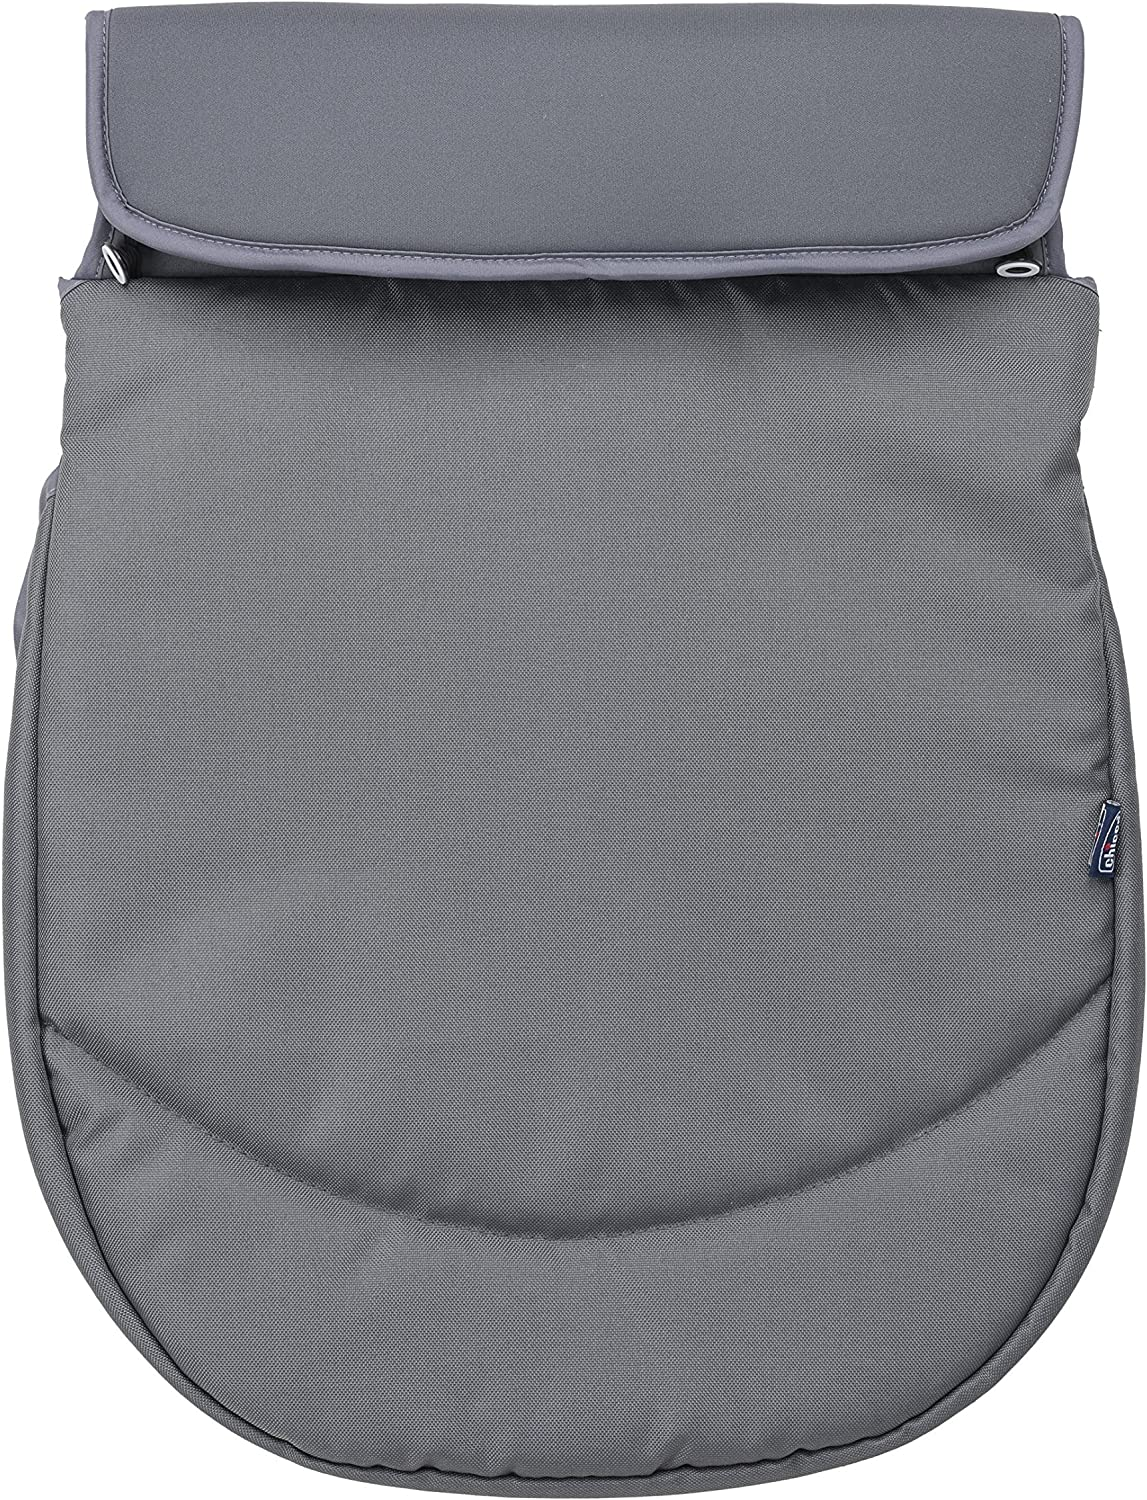 Chicco Pack Coloris Urban Combin/ée Anthracite